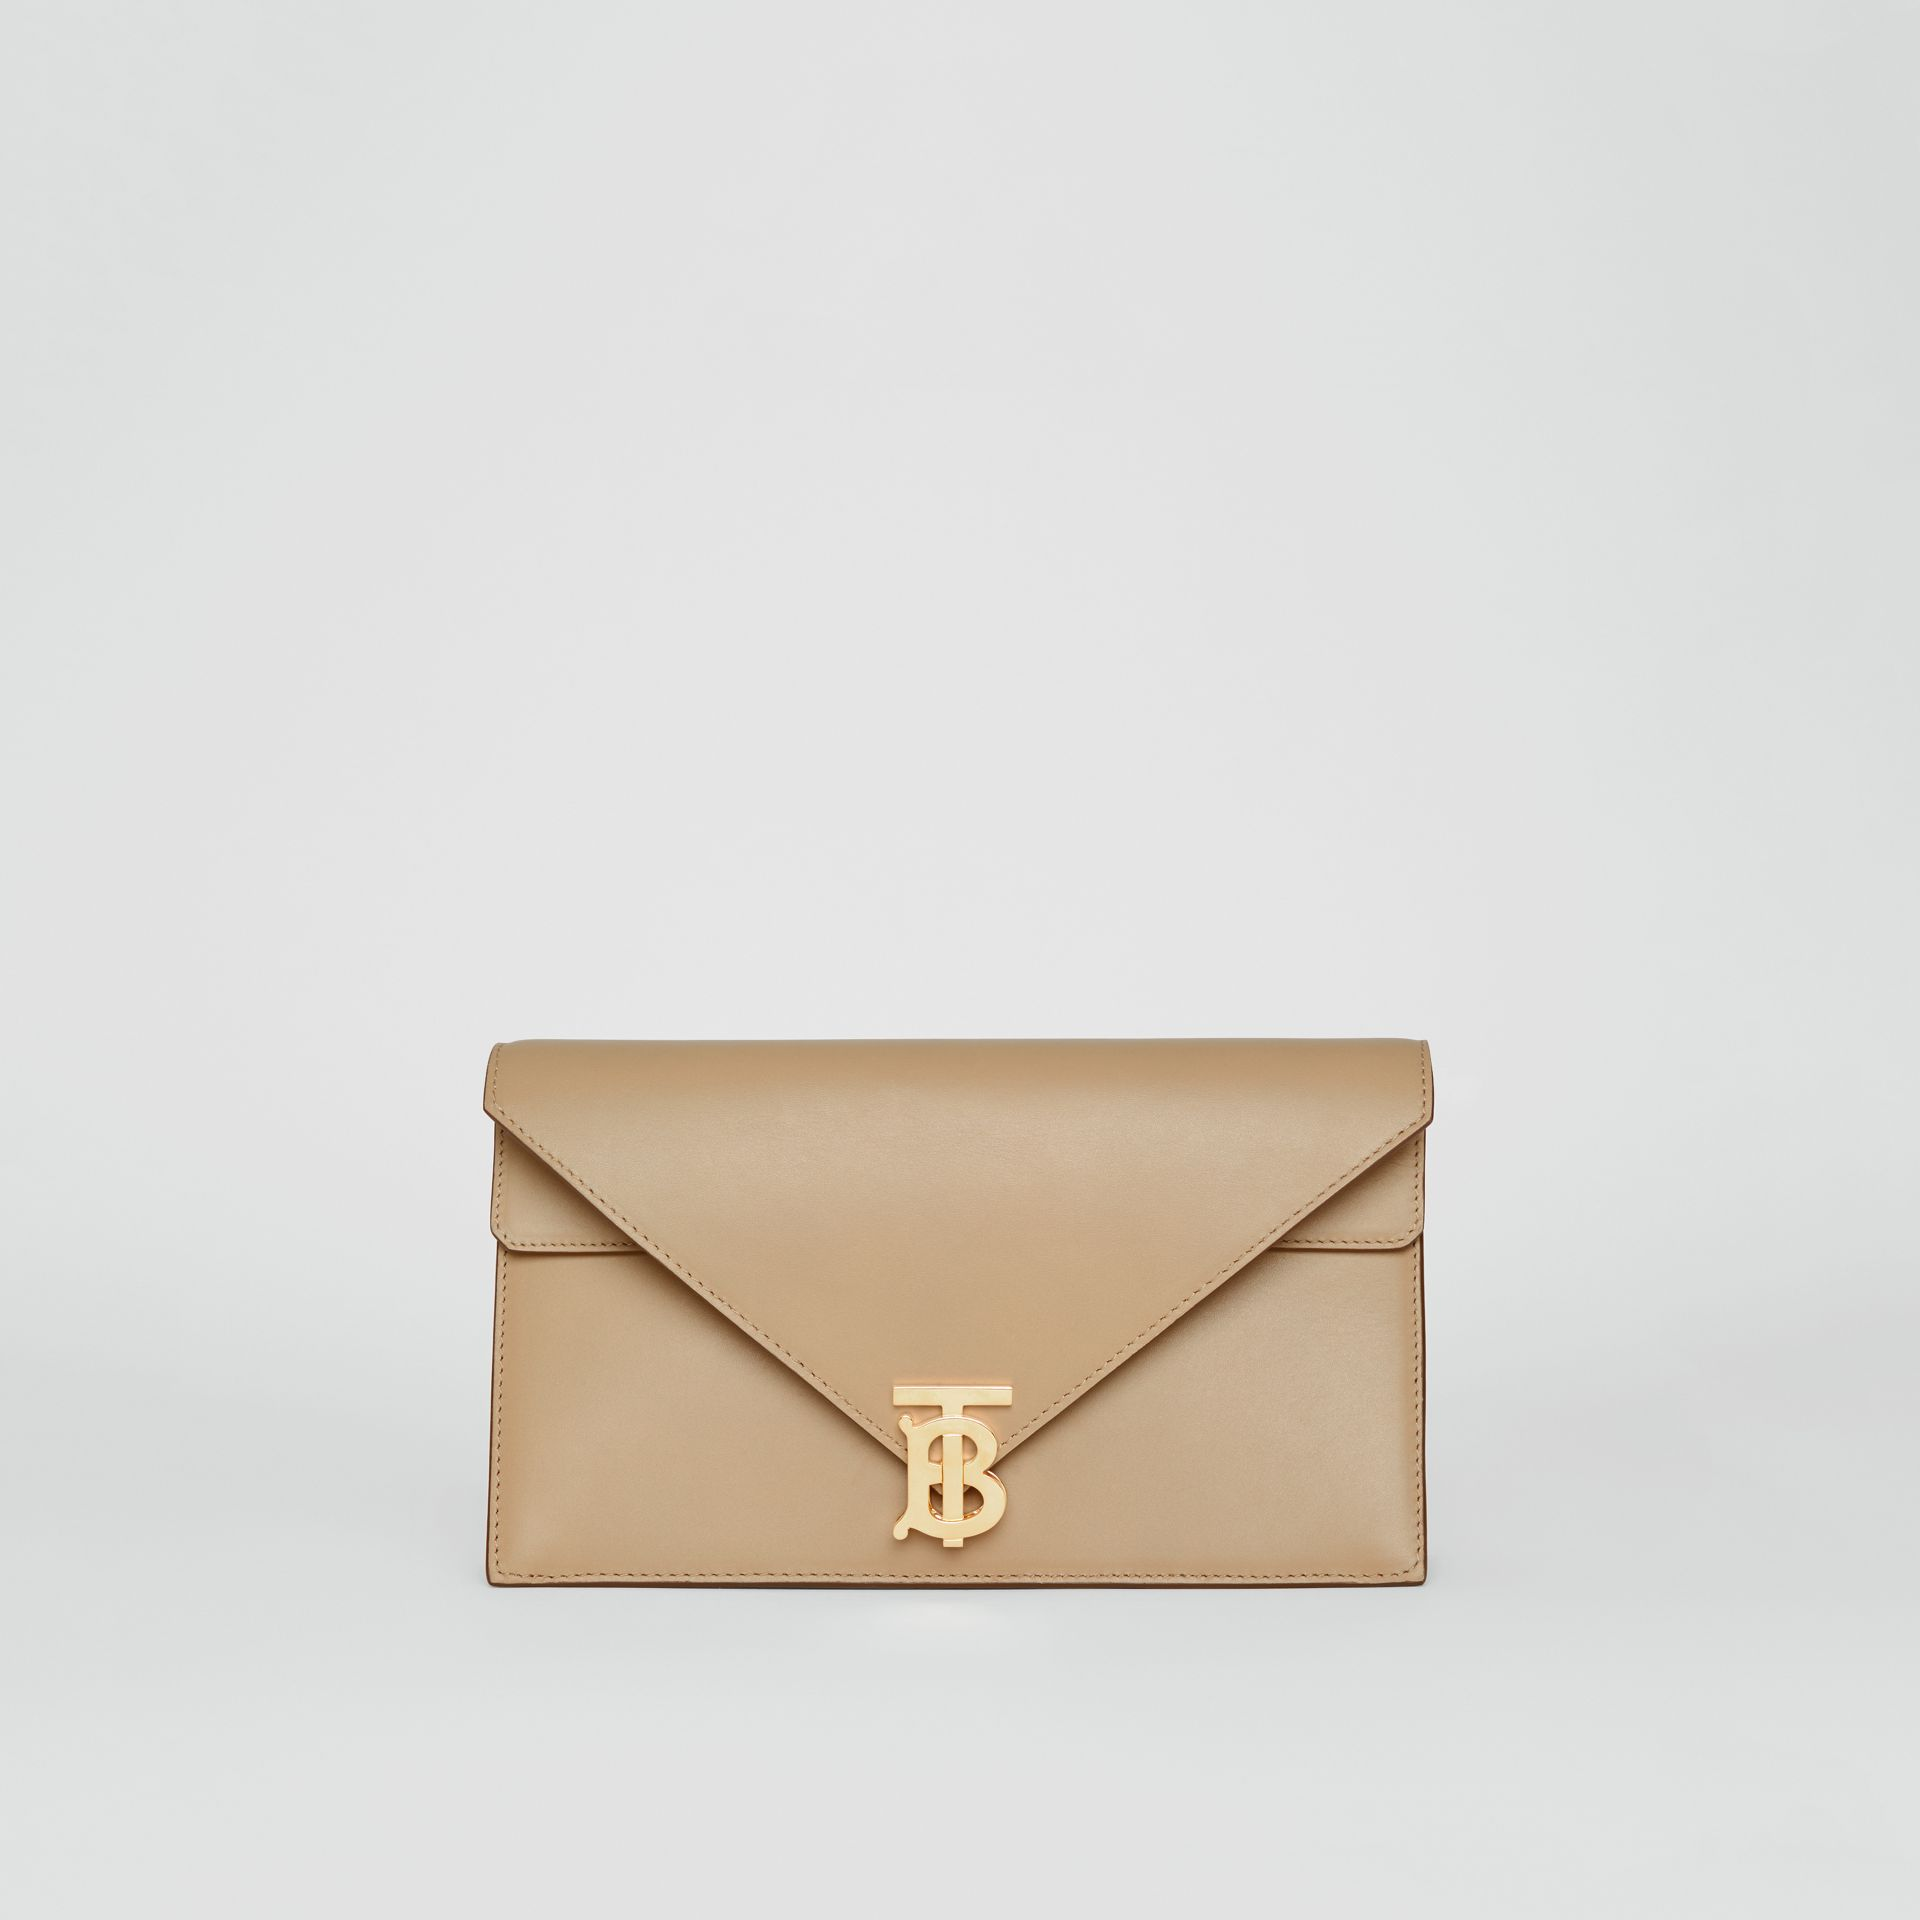 Small Leather TB Envelope Clutch in Honey - Women | Burberry United States - gallery image 0